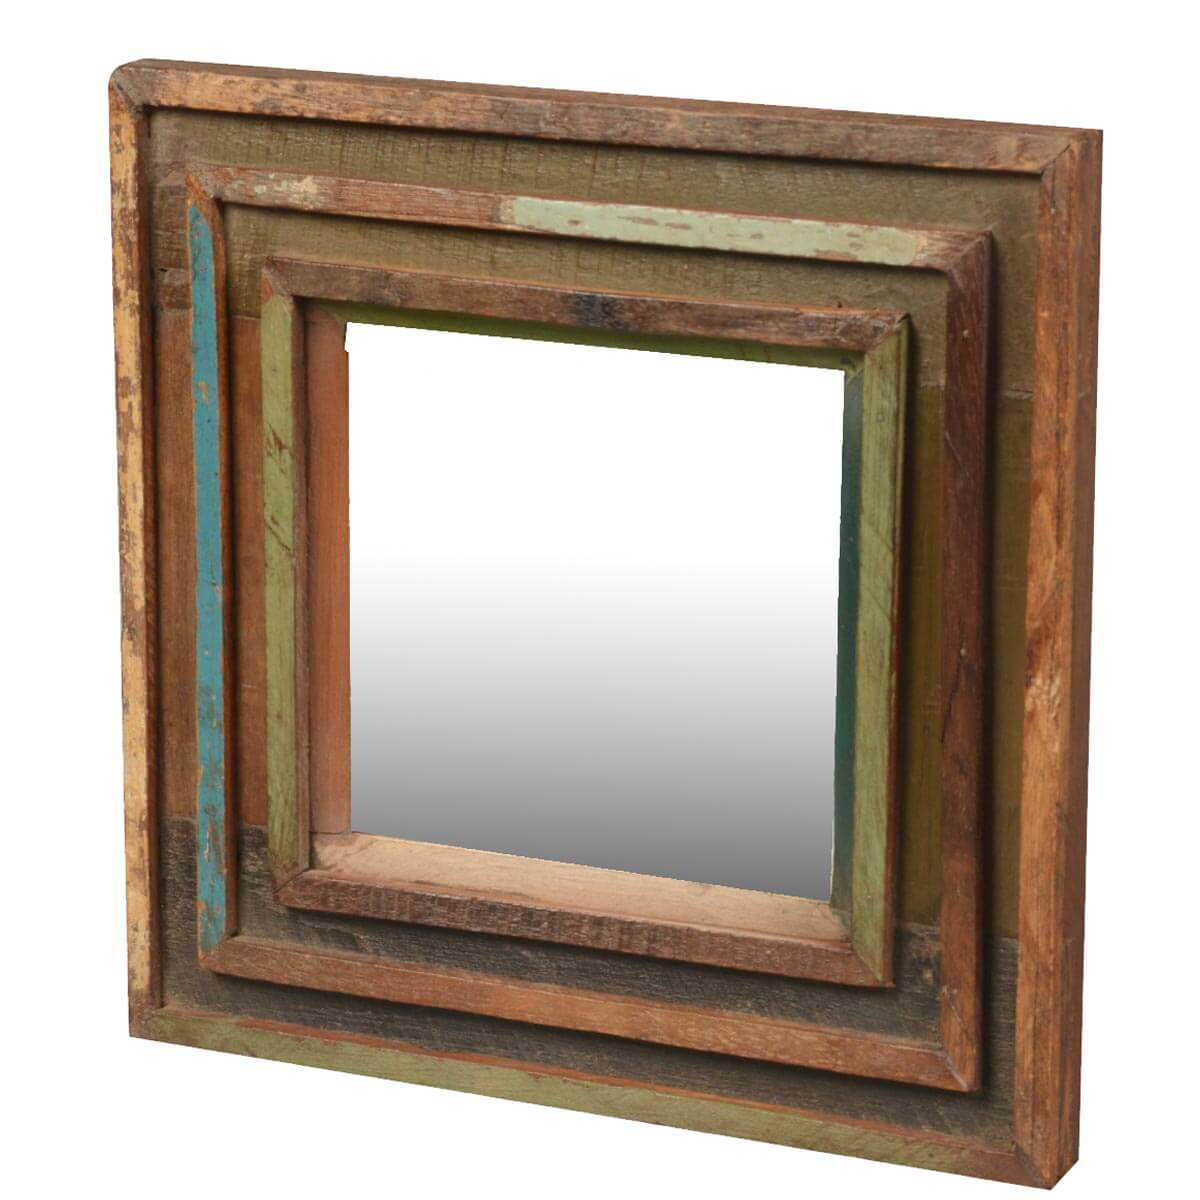 Appalachian rustic reclaimed wood 12 5 square framed wall for Wood framed mirrors